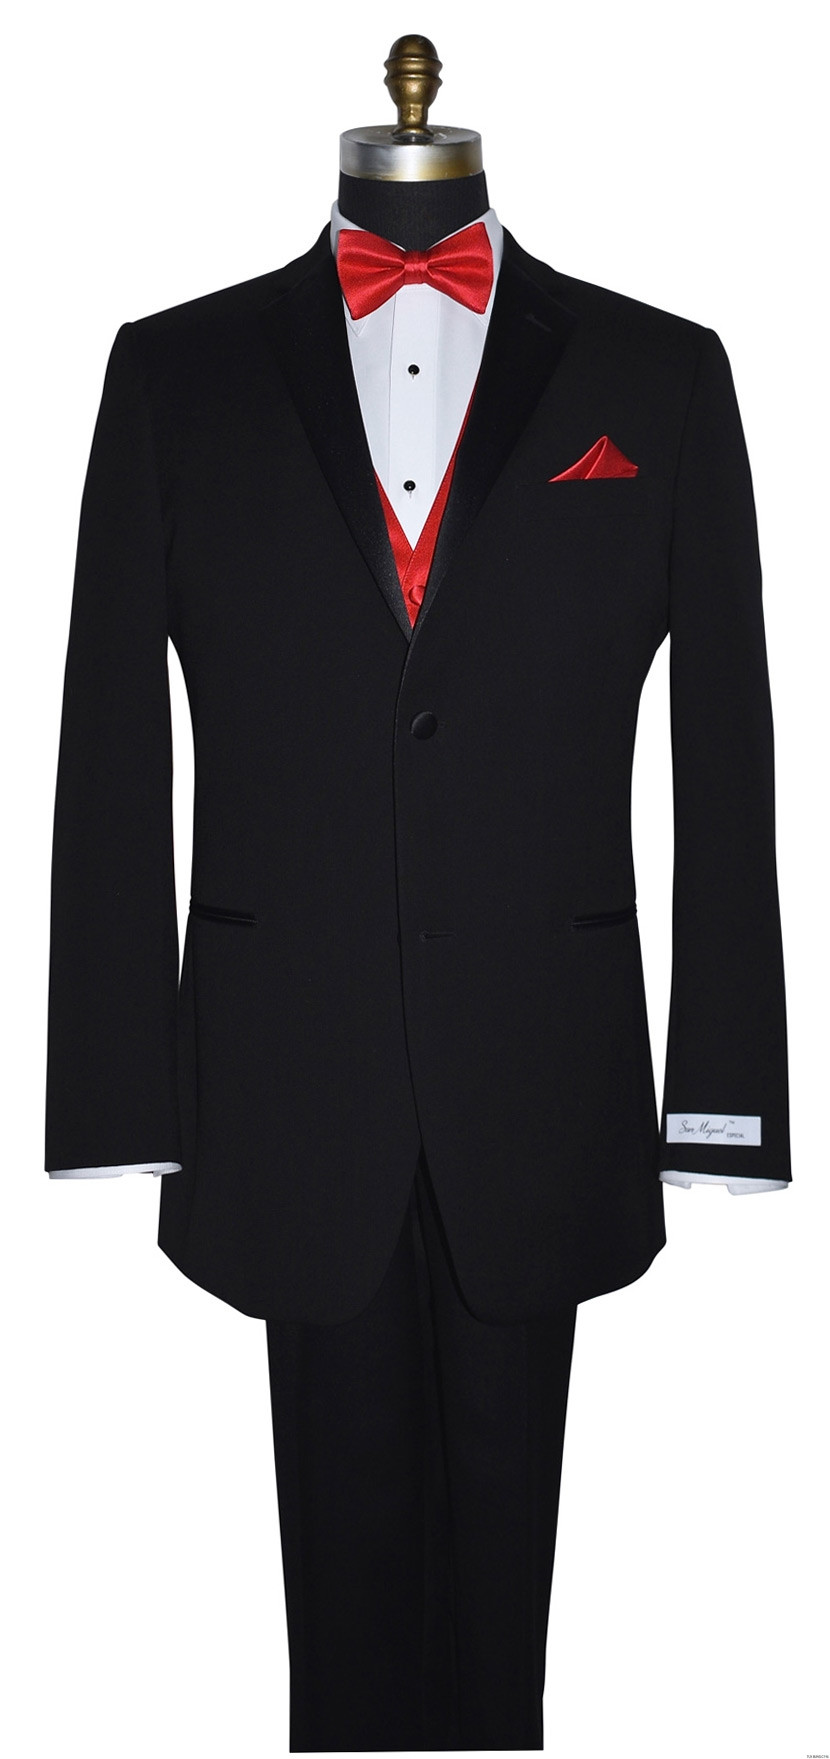 ruby red tuxedo vest with ruby red pre-tied bowtie